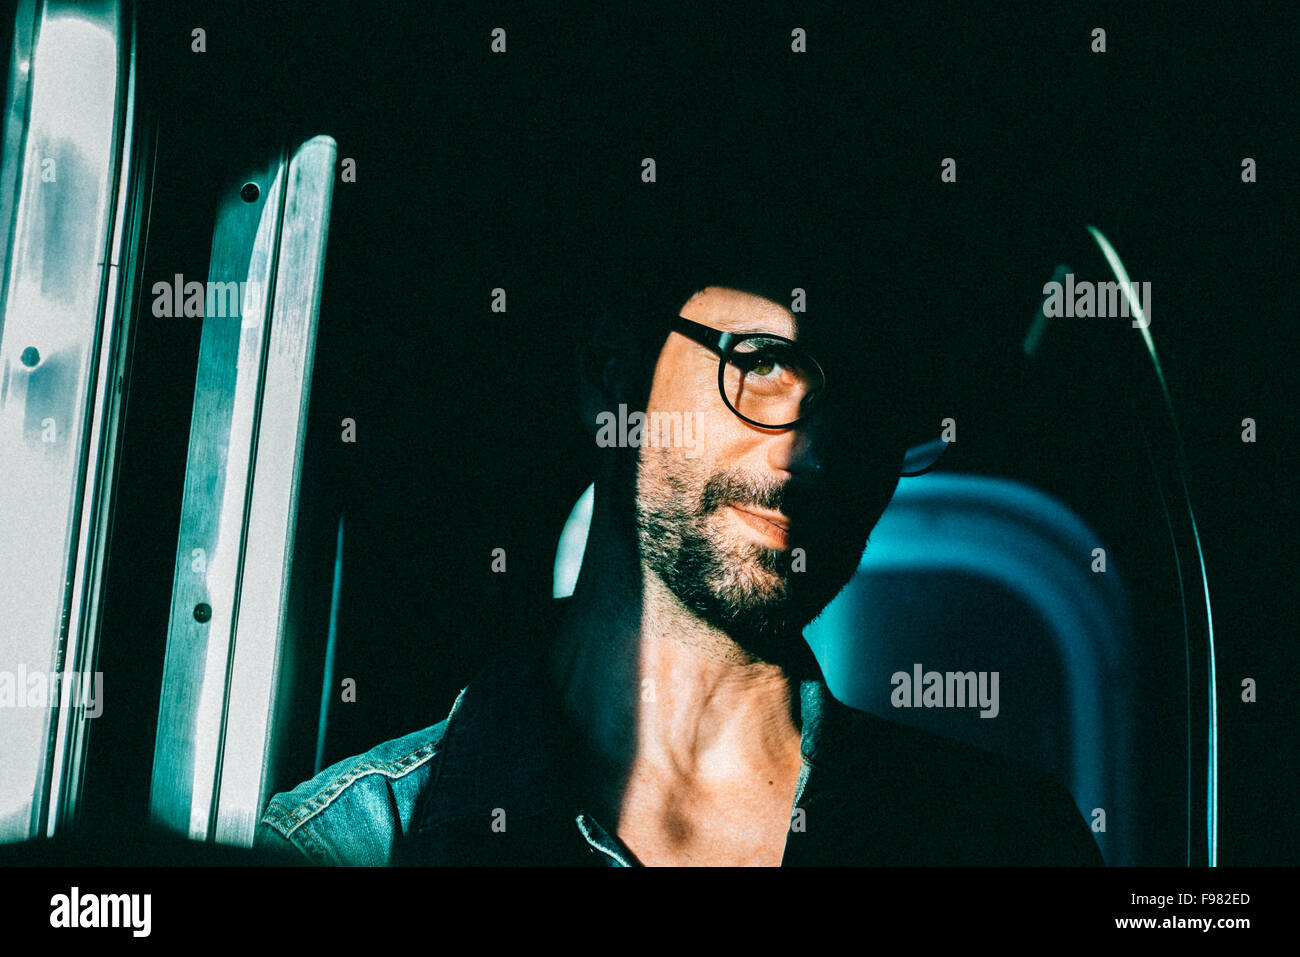 Portrait of Young Man Wearing Eyeglasses Photo Stock